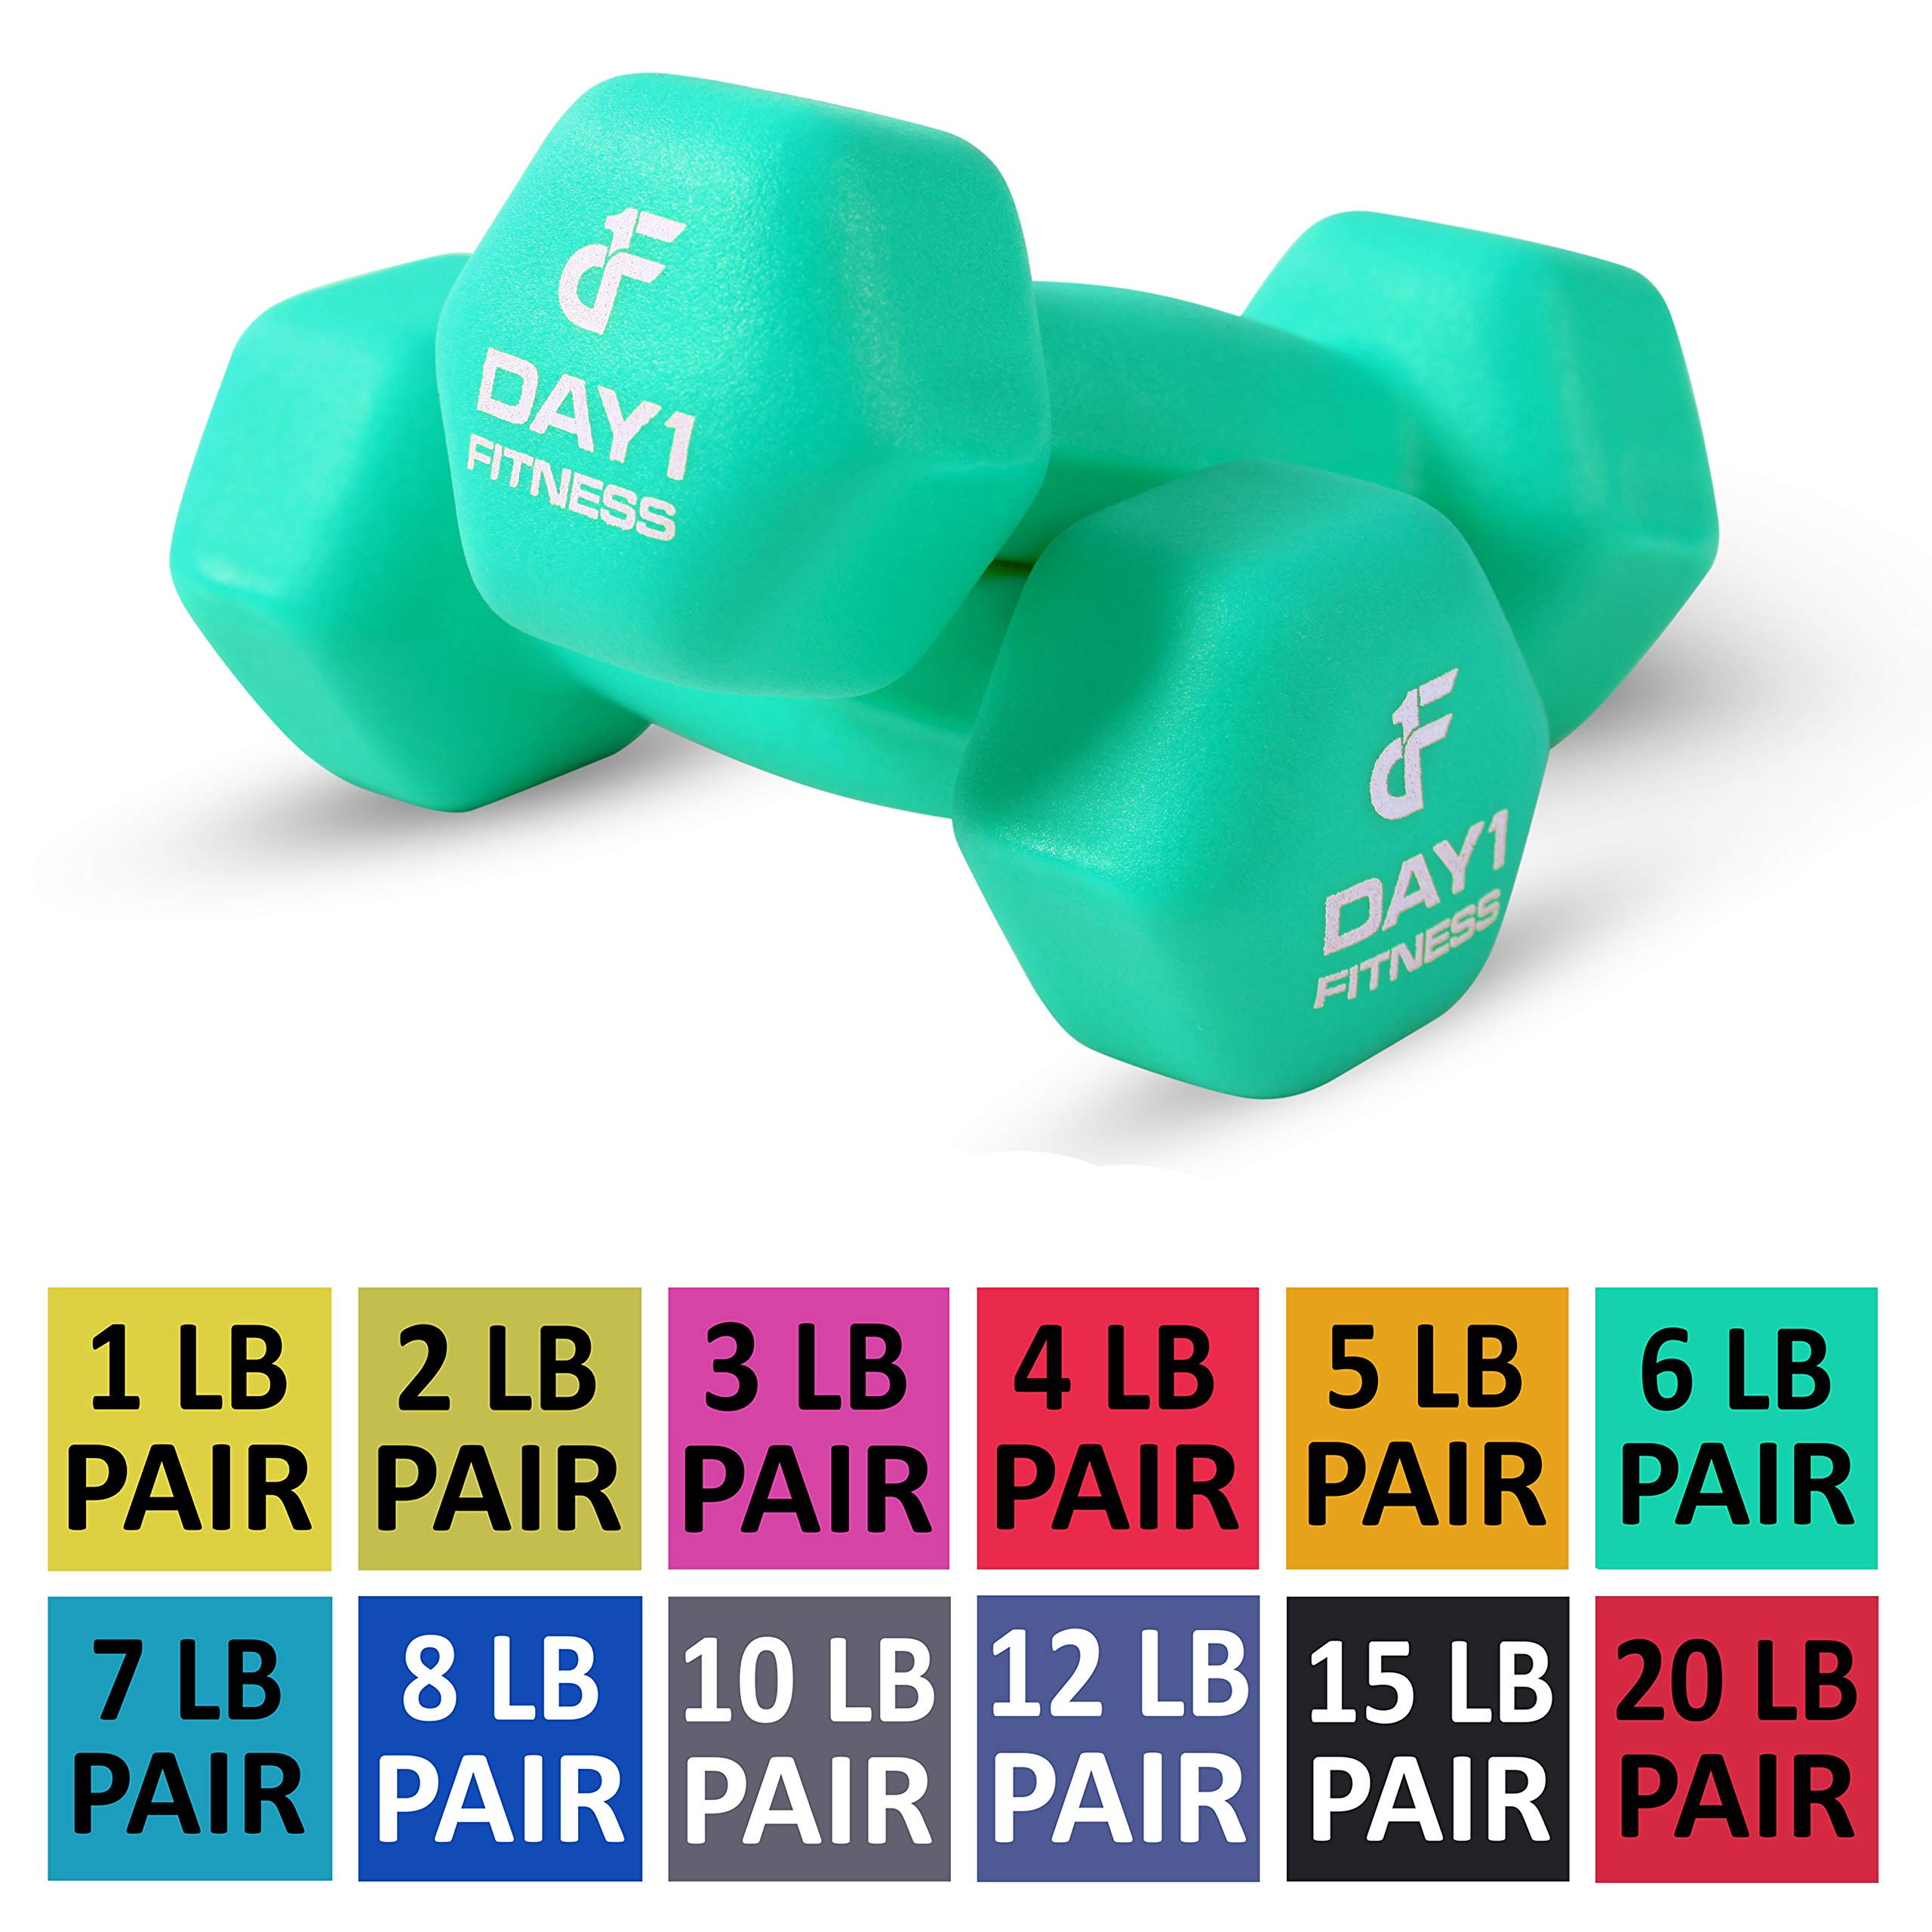 Day 1 Fitness Neoprene Dumbbell Pairs 6 Pounds - Non-Slip, Hexagon Shape, Color Coded, Easy to Read Hand Weights for Muscle Toning, Strength Building, Weight Loss